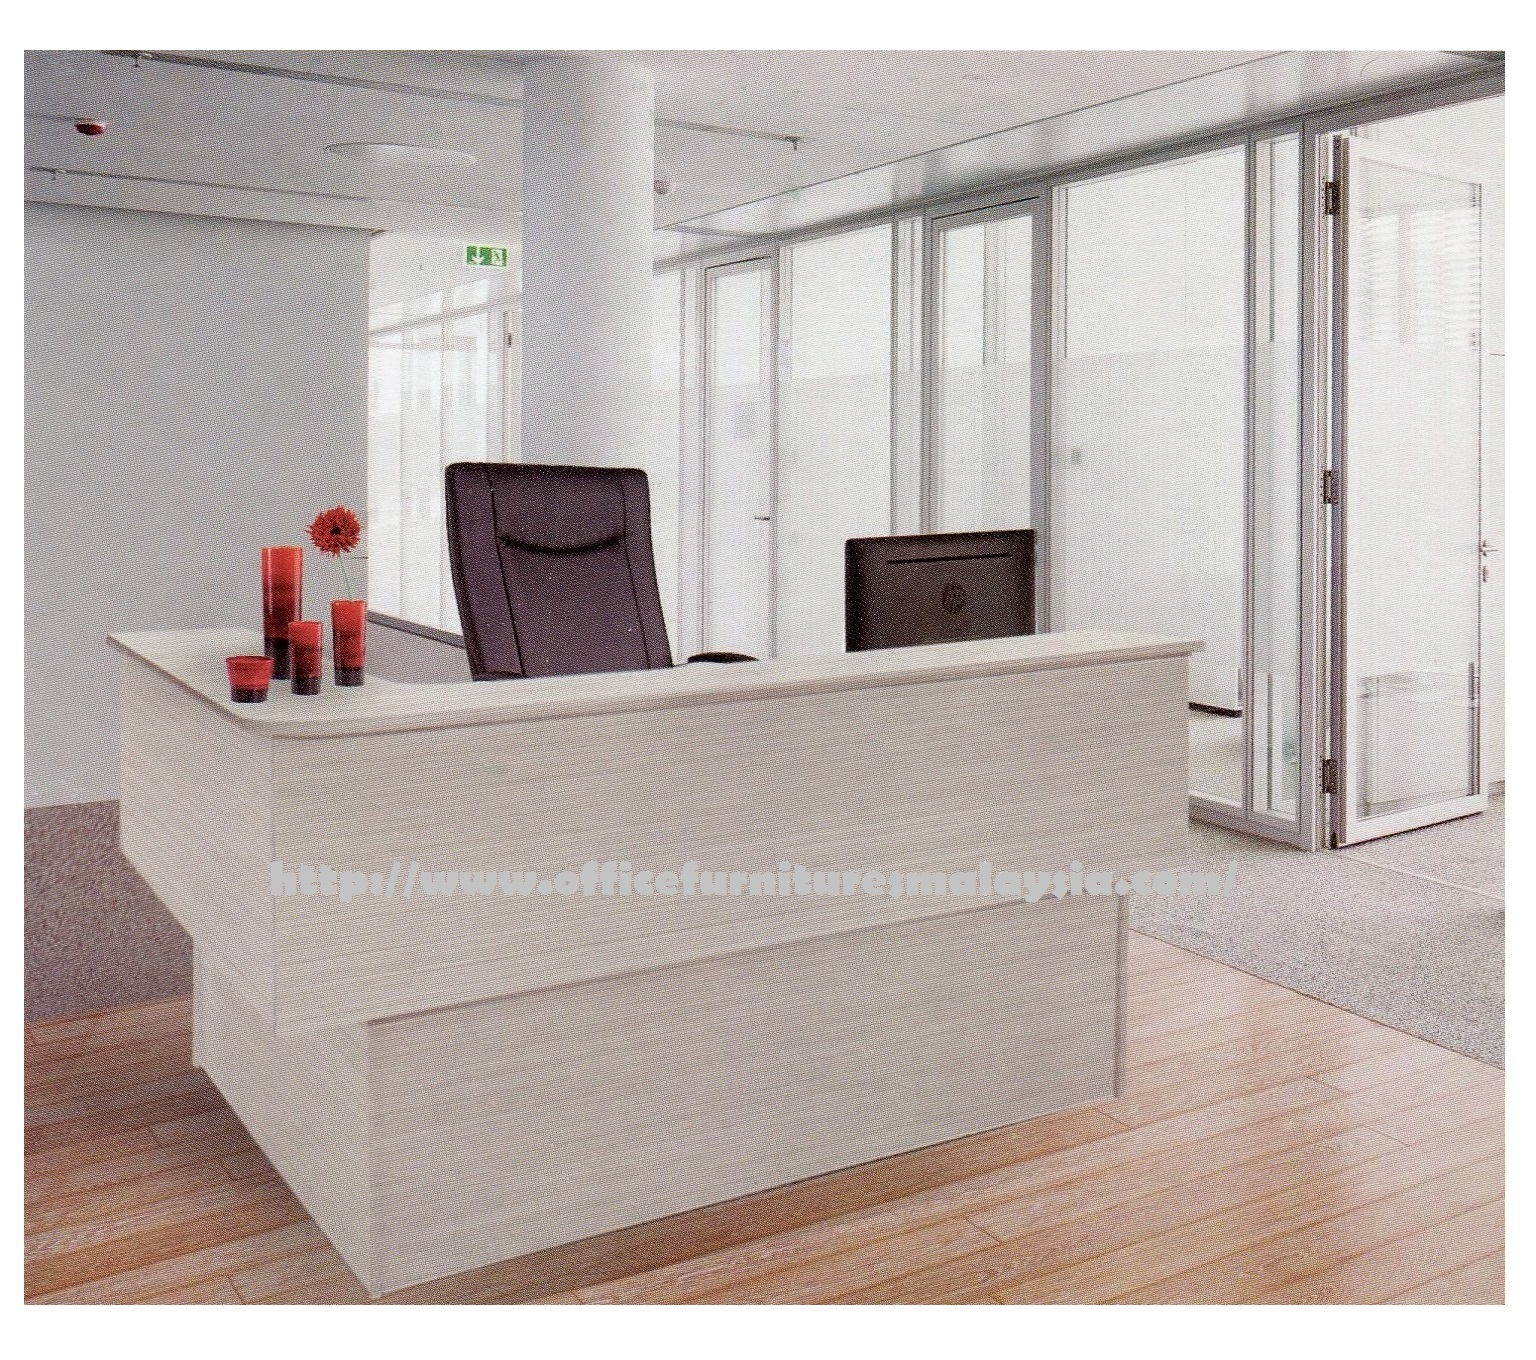 Sofa Helpdesk Office Reception Counter Table Desk Office Furnitures